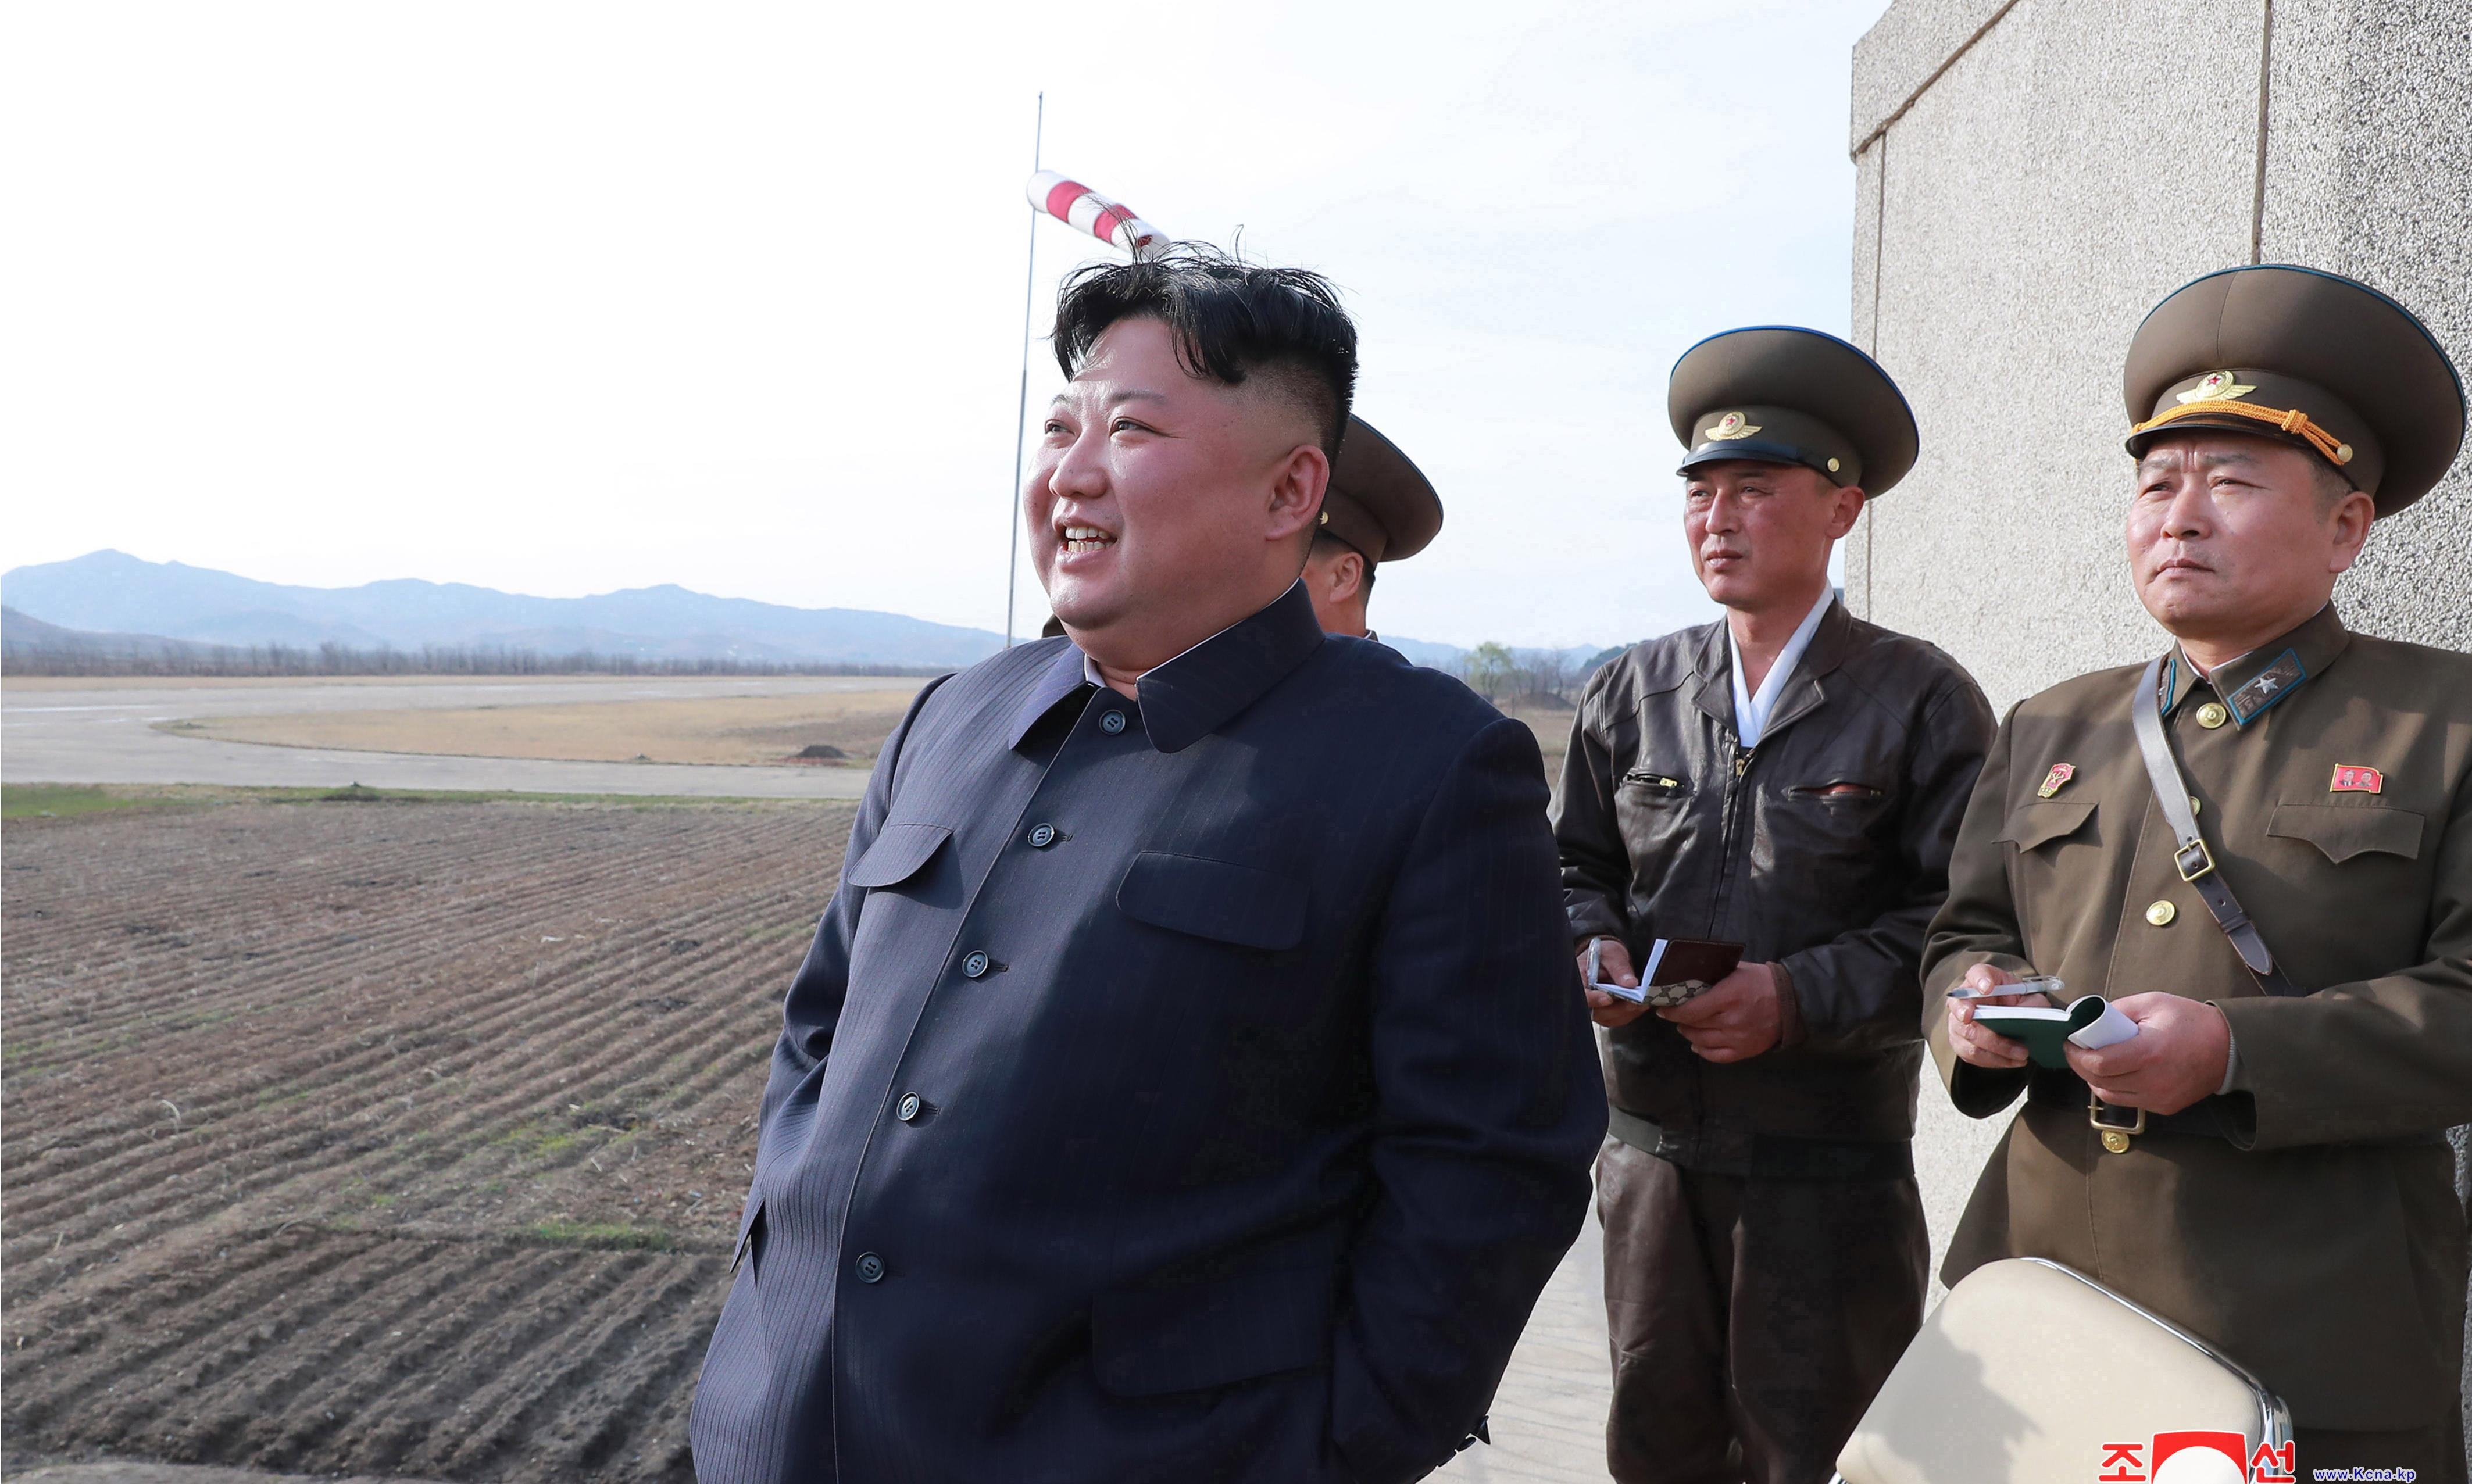 Kim Jong-un oversees first weapons test since failed US-North Korea summit